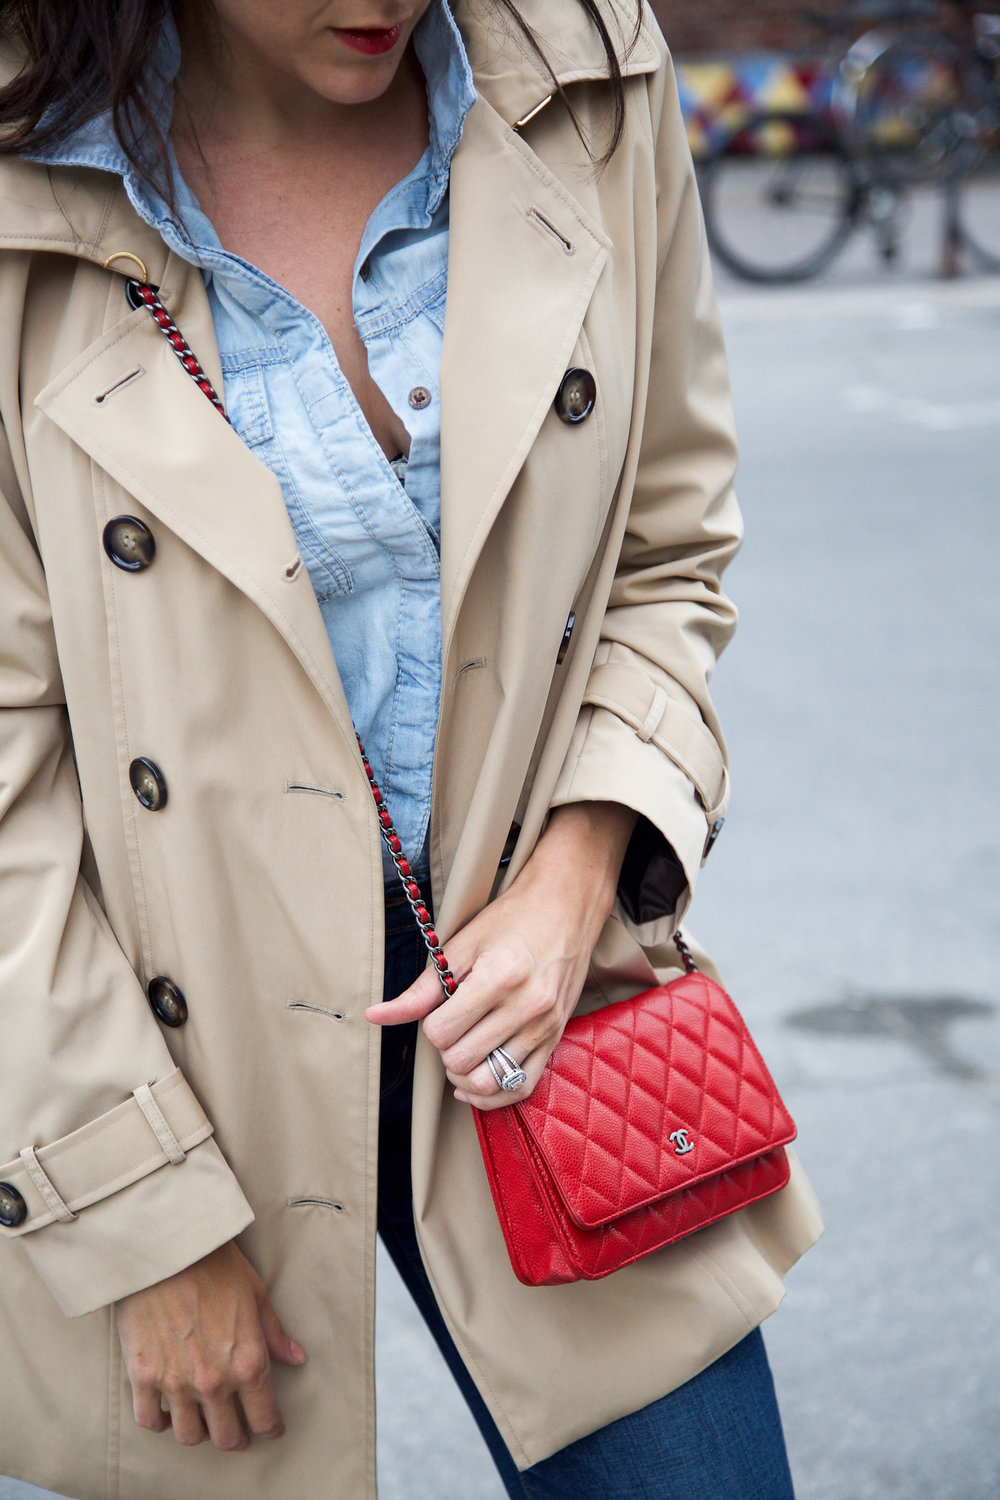 denim-on-denim-outfit-with-trench-coat-and-red-accessories5.jpg